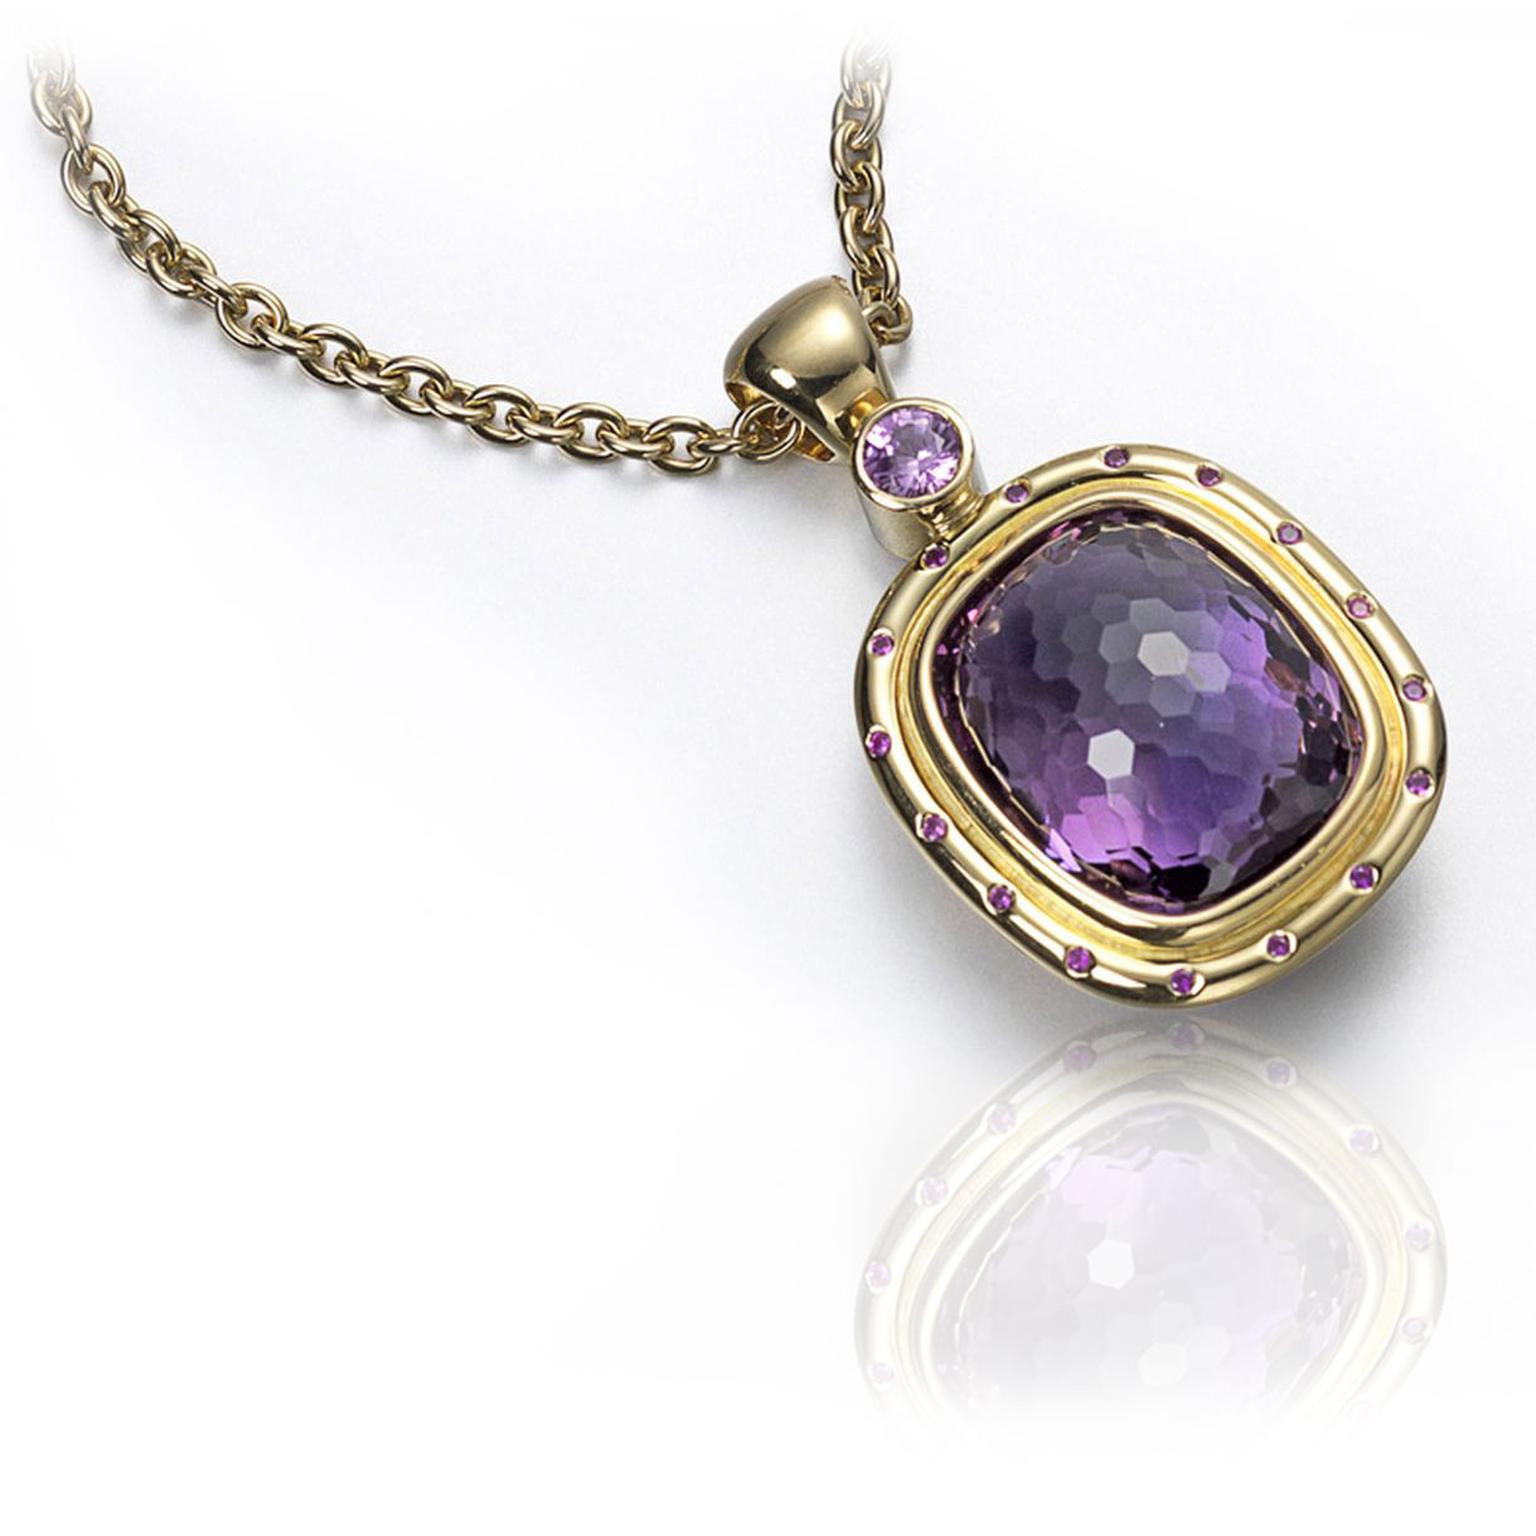 Alison Bradley Reversible Pendant in 18 carat yellow gold set with a large amethyst  £9,800